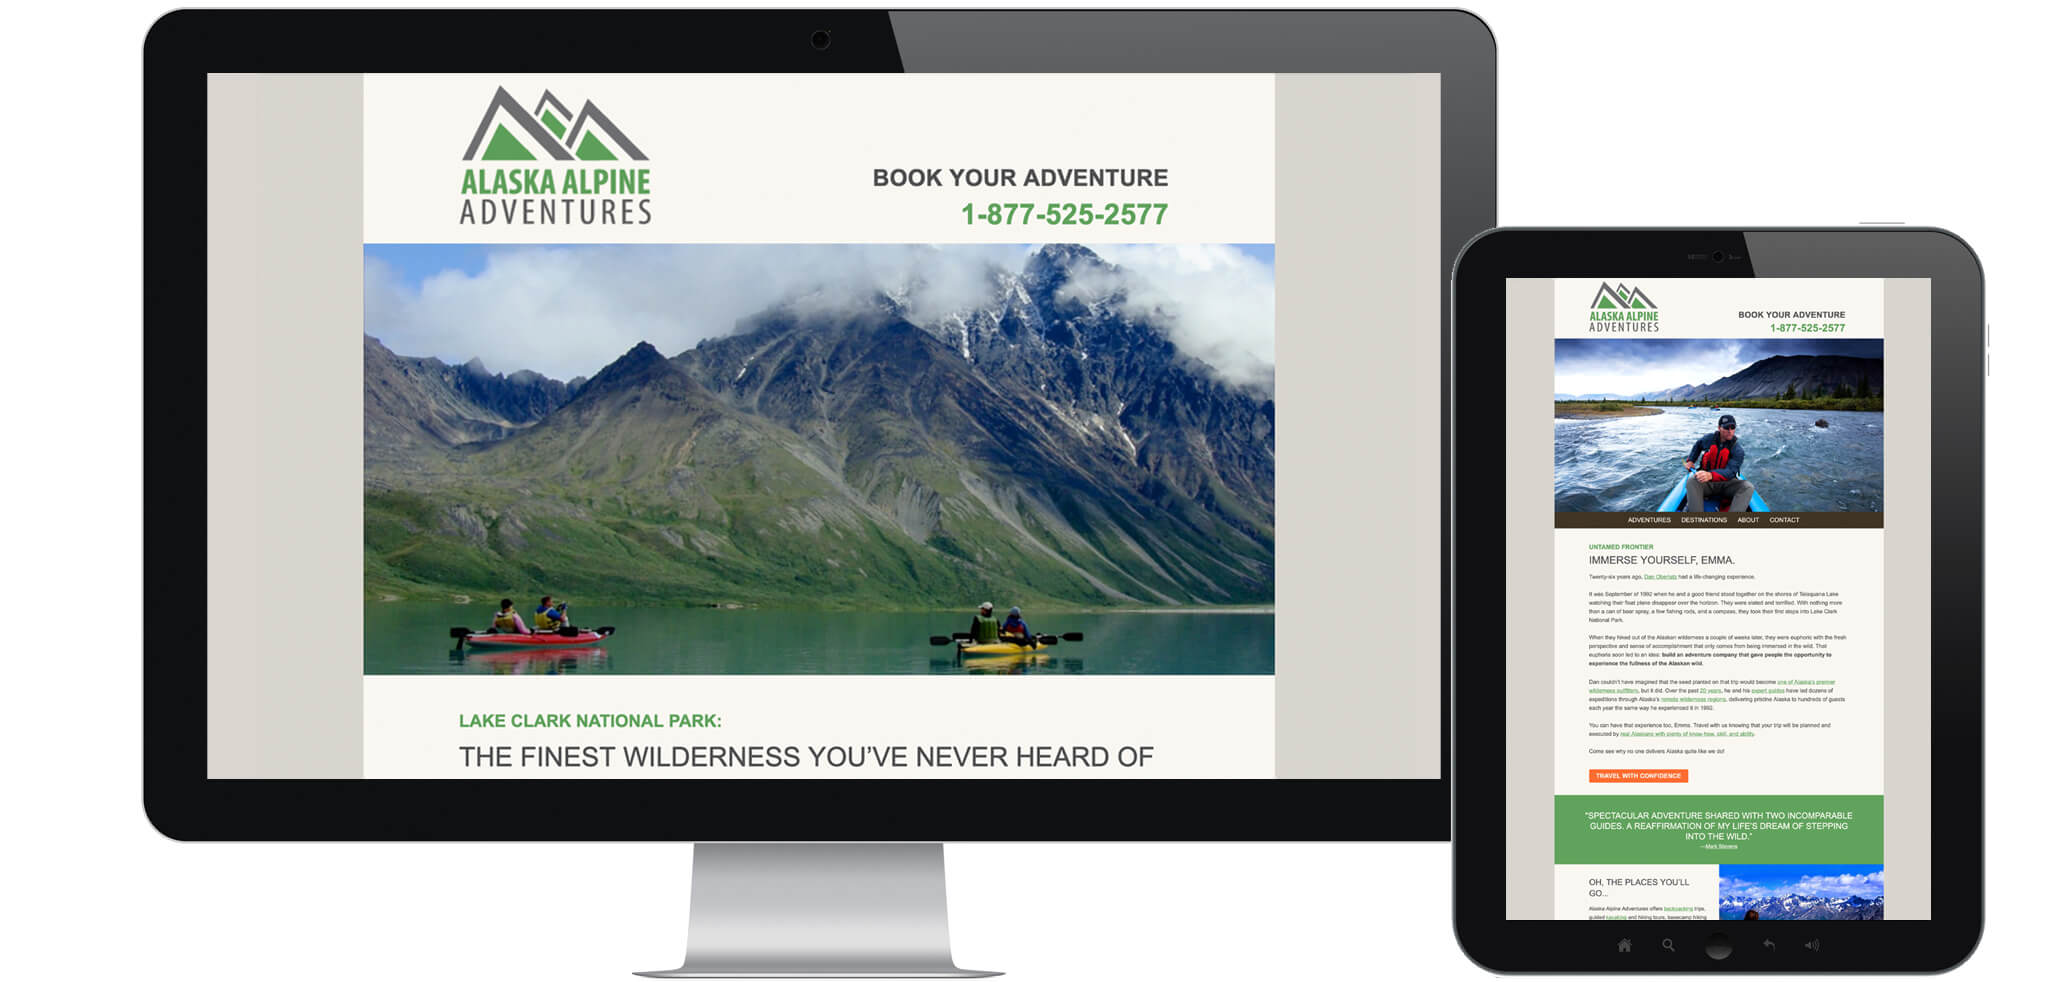 Book an Alpine Adventure - Travel Email Marketing